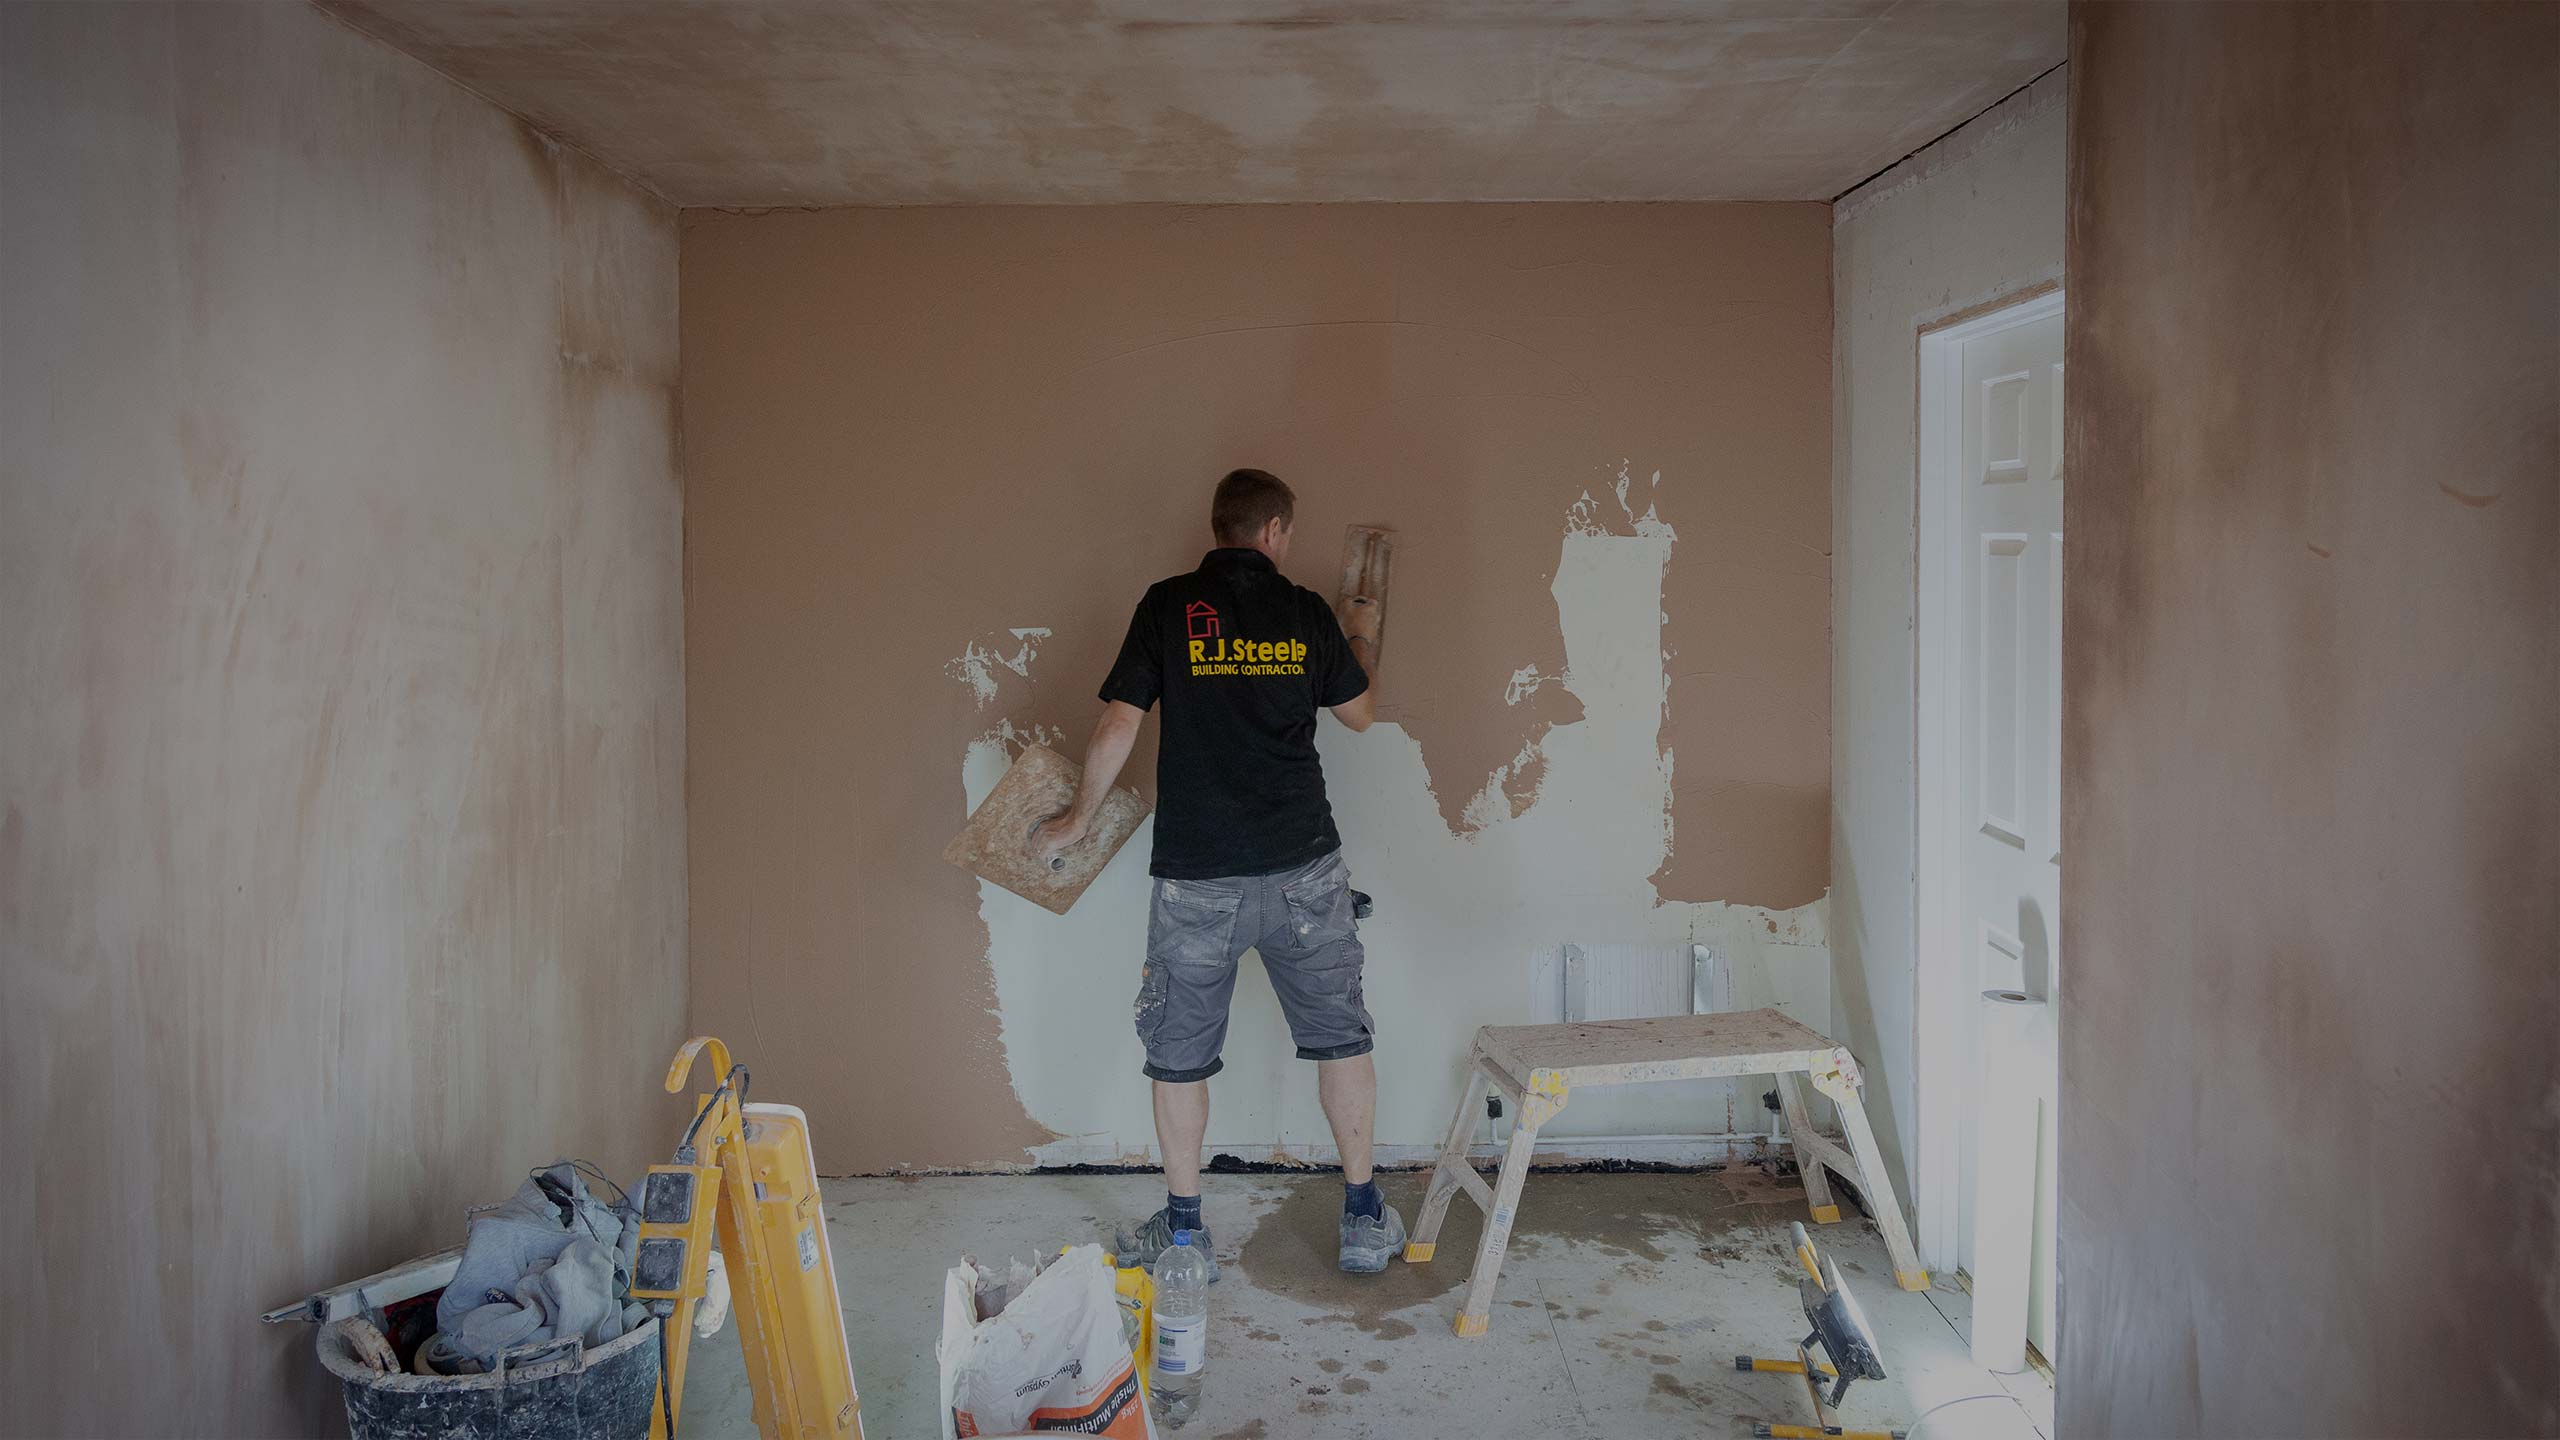 Plasterer at work - decorating and building work by RJ Steeles builders